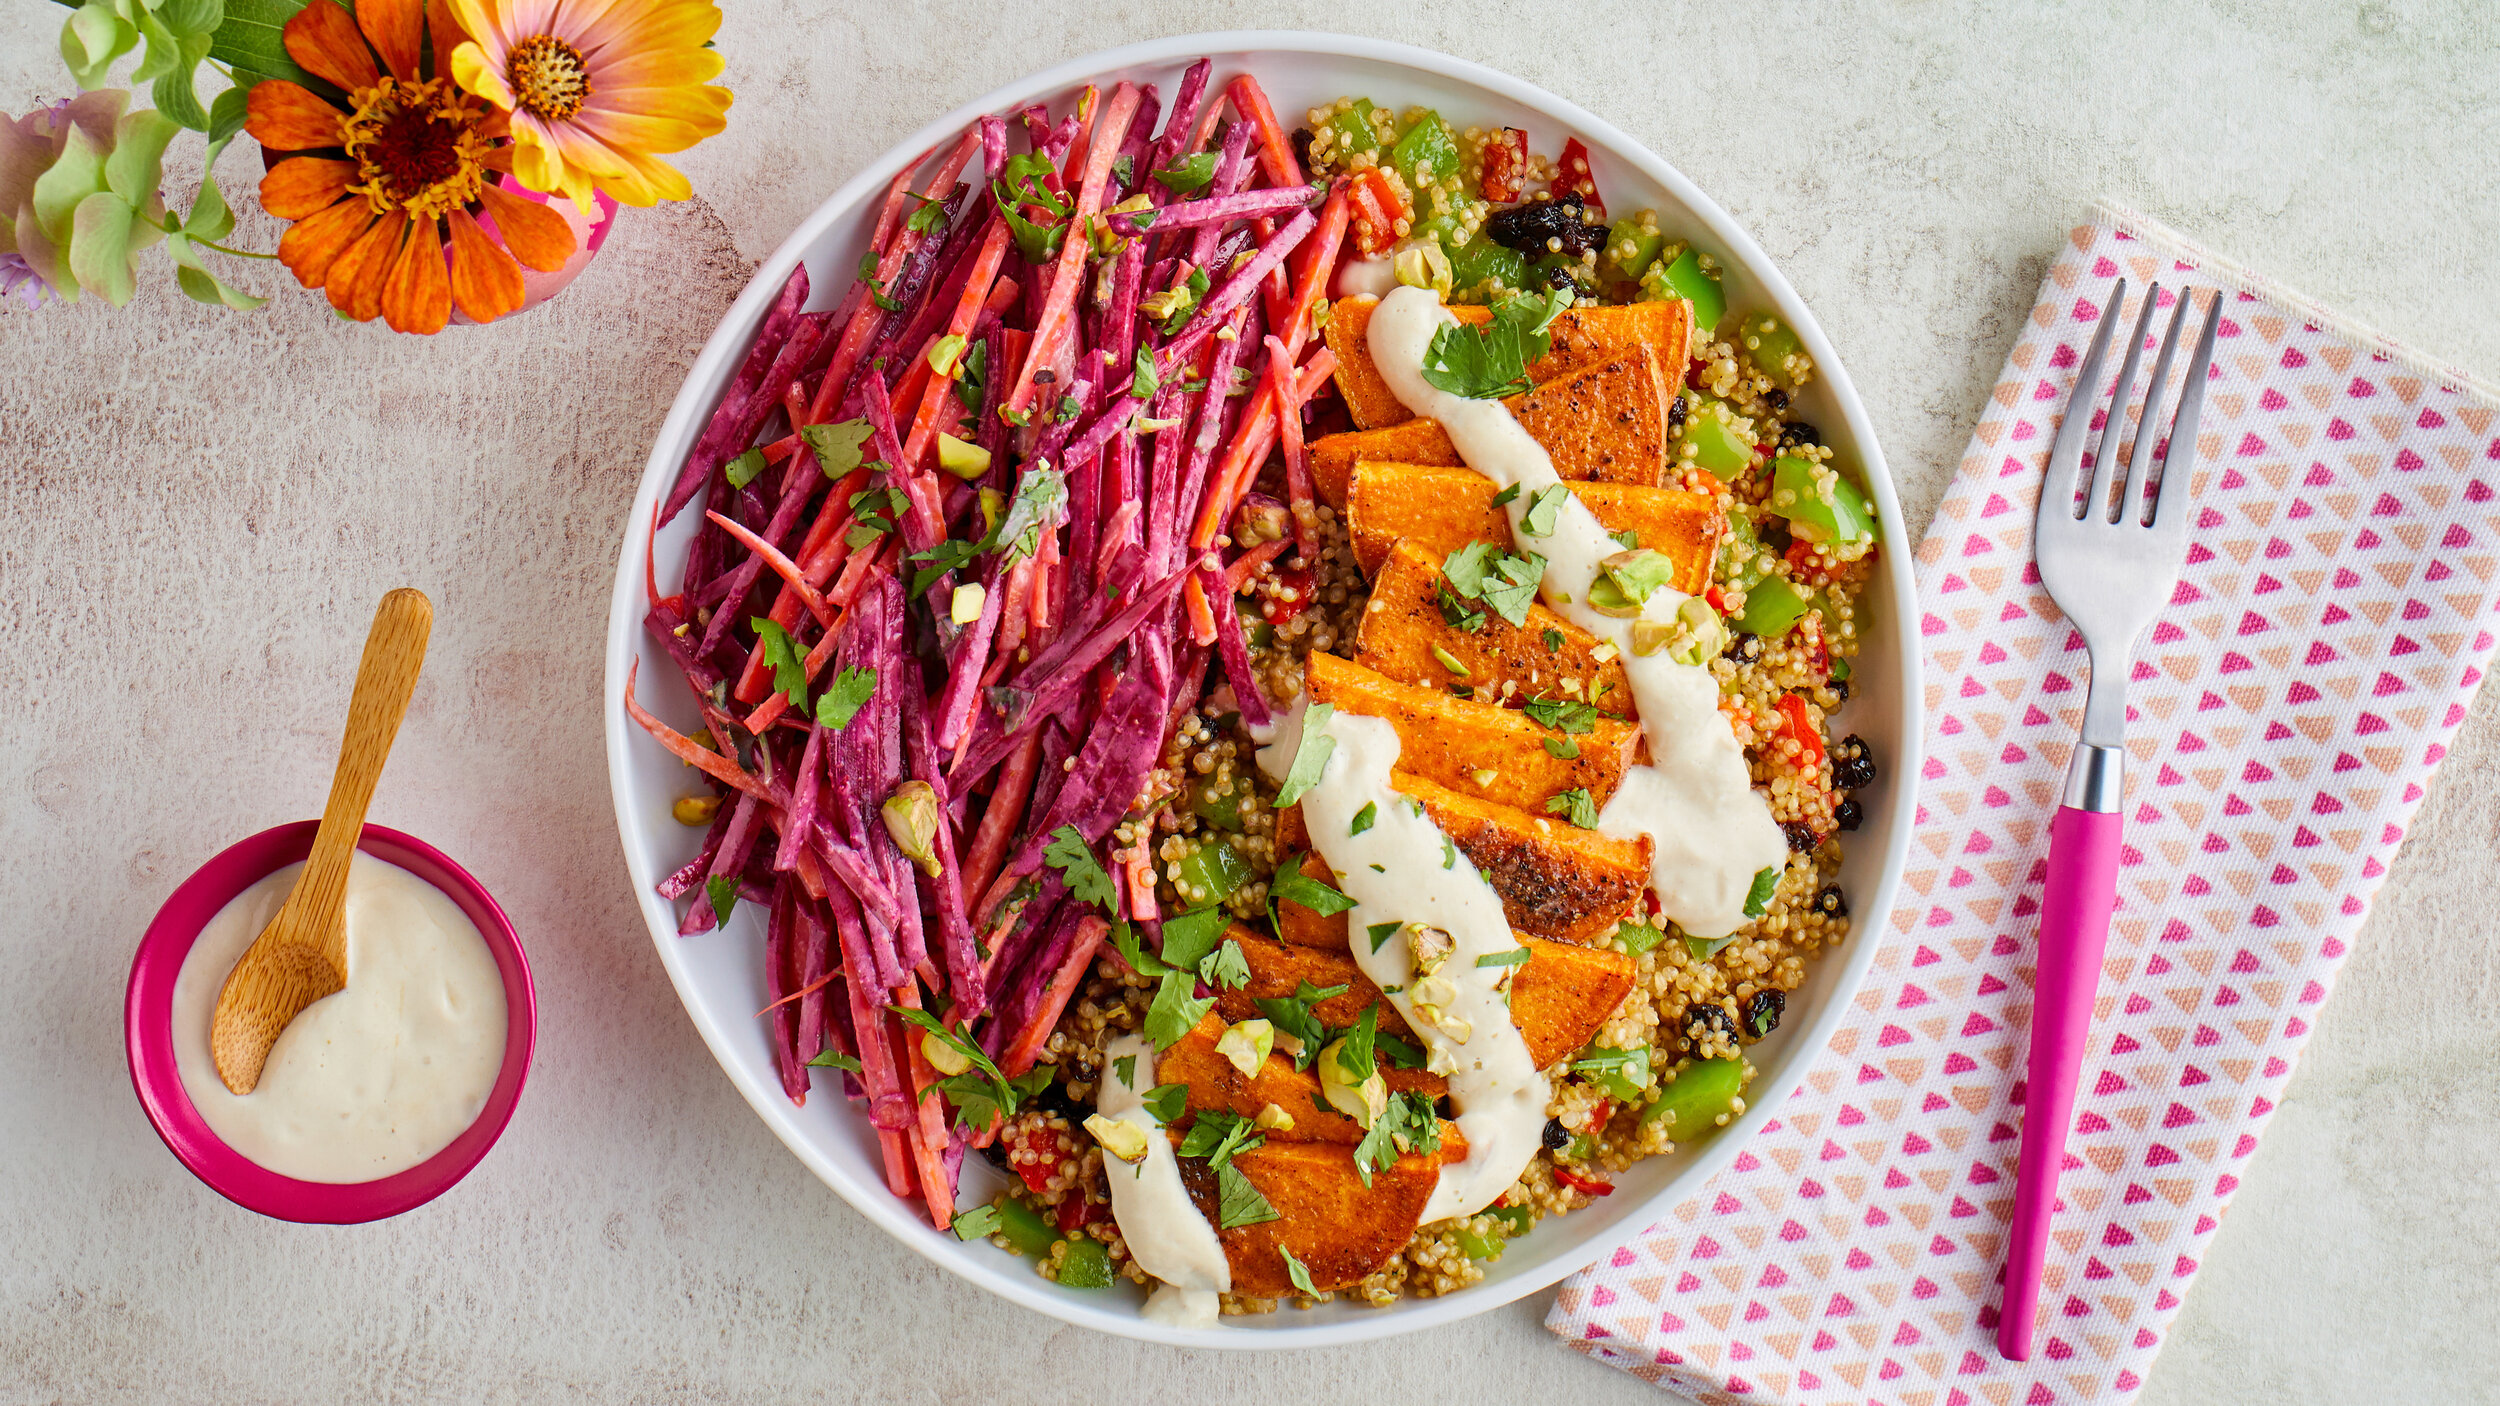 V-SWTMOR-Moroccan Rubbed Sweet Potatoes with Pepper Currant Quinoa_W262_PP_VEGAN14318.jpg